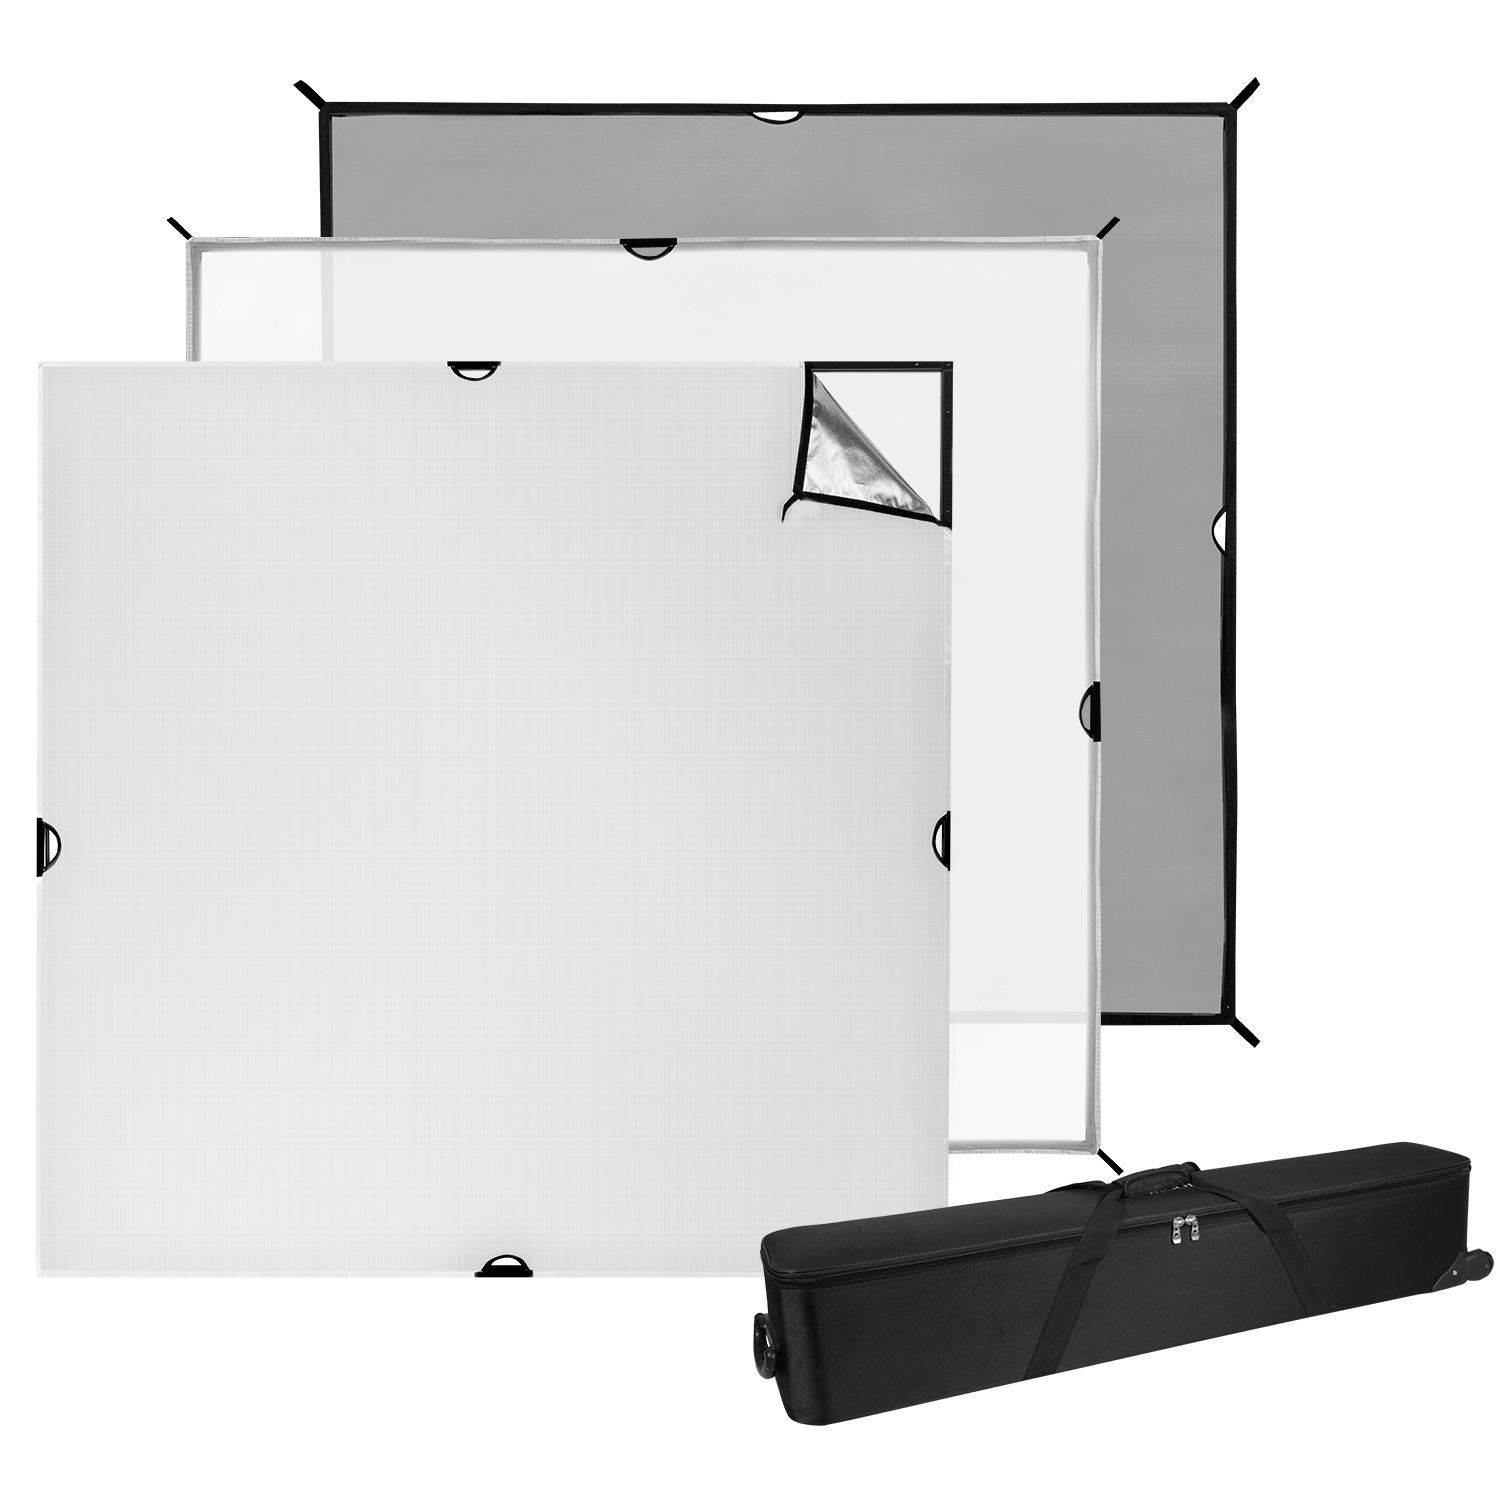 Scrim Jim Cine Video Kit (6' x 6')